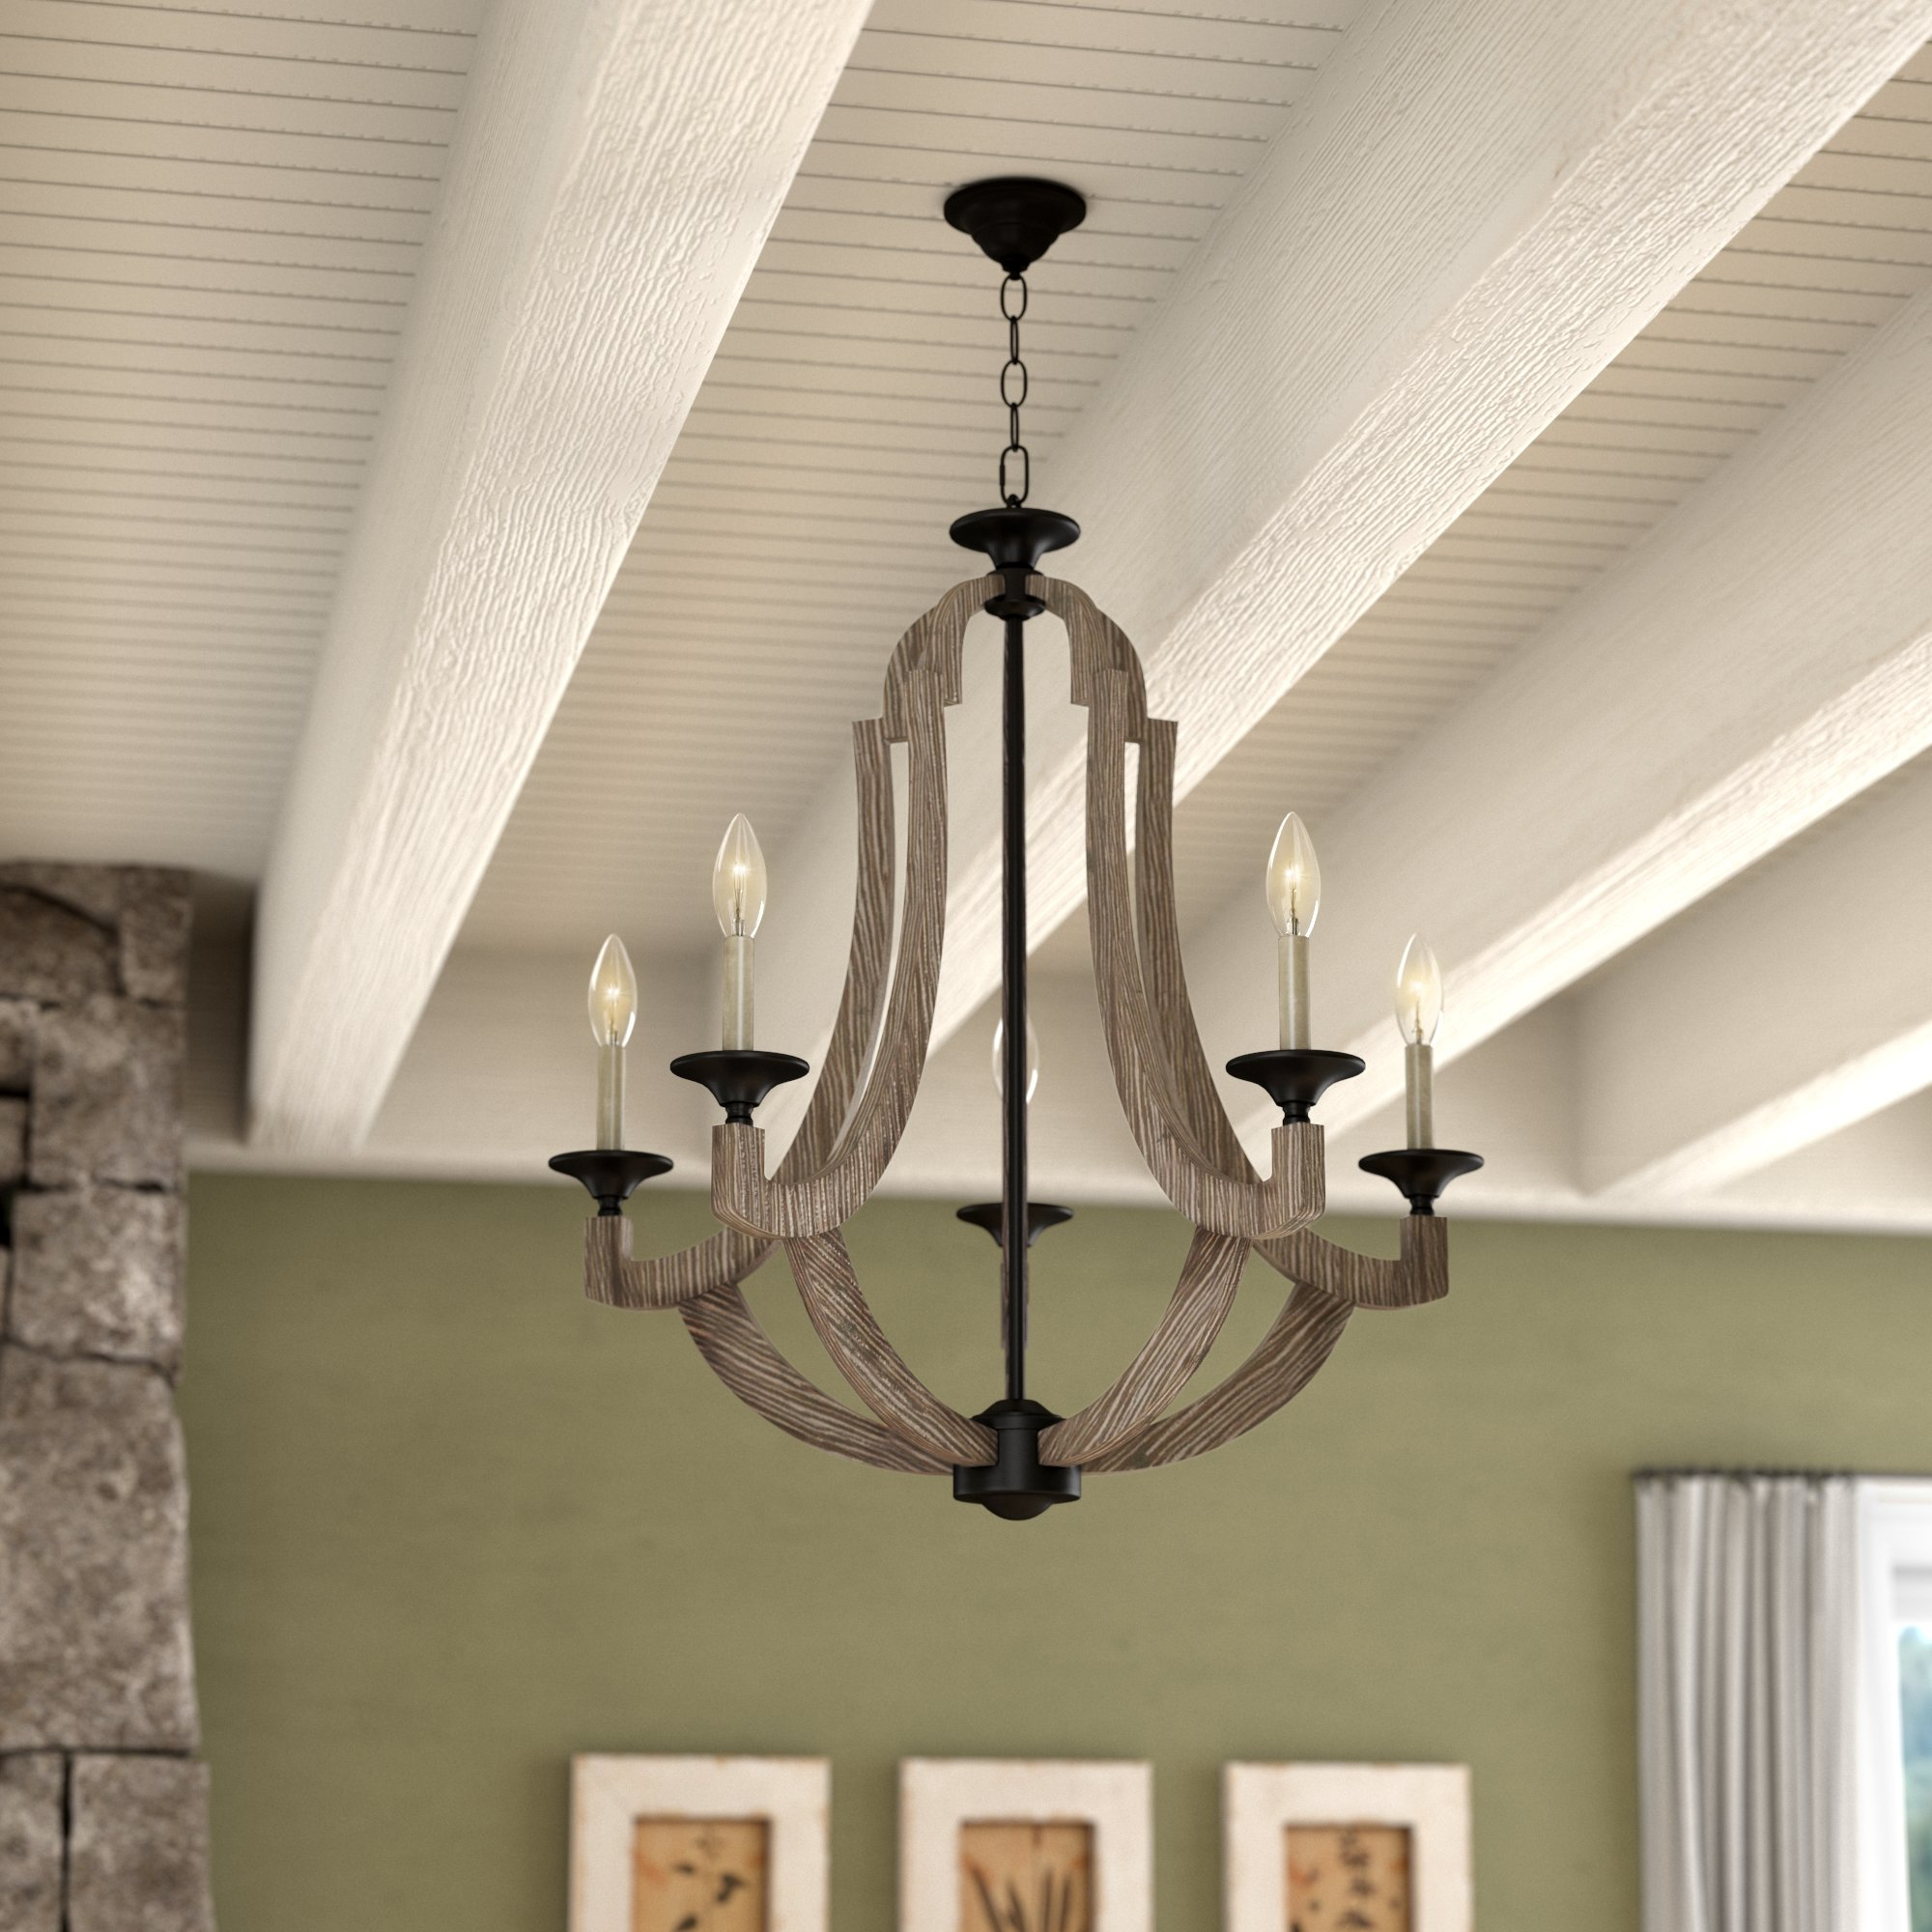 Marcoux 5 Light Empire Chandelier For Kenna 5 Light Empire Chandeliers (View 4 of 30)